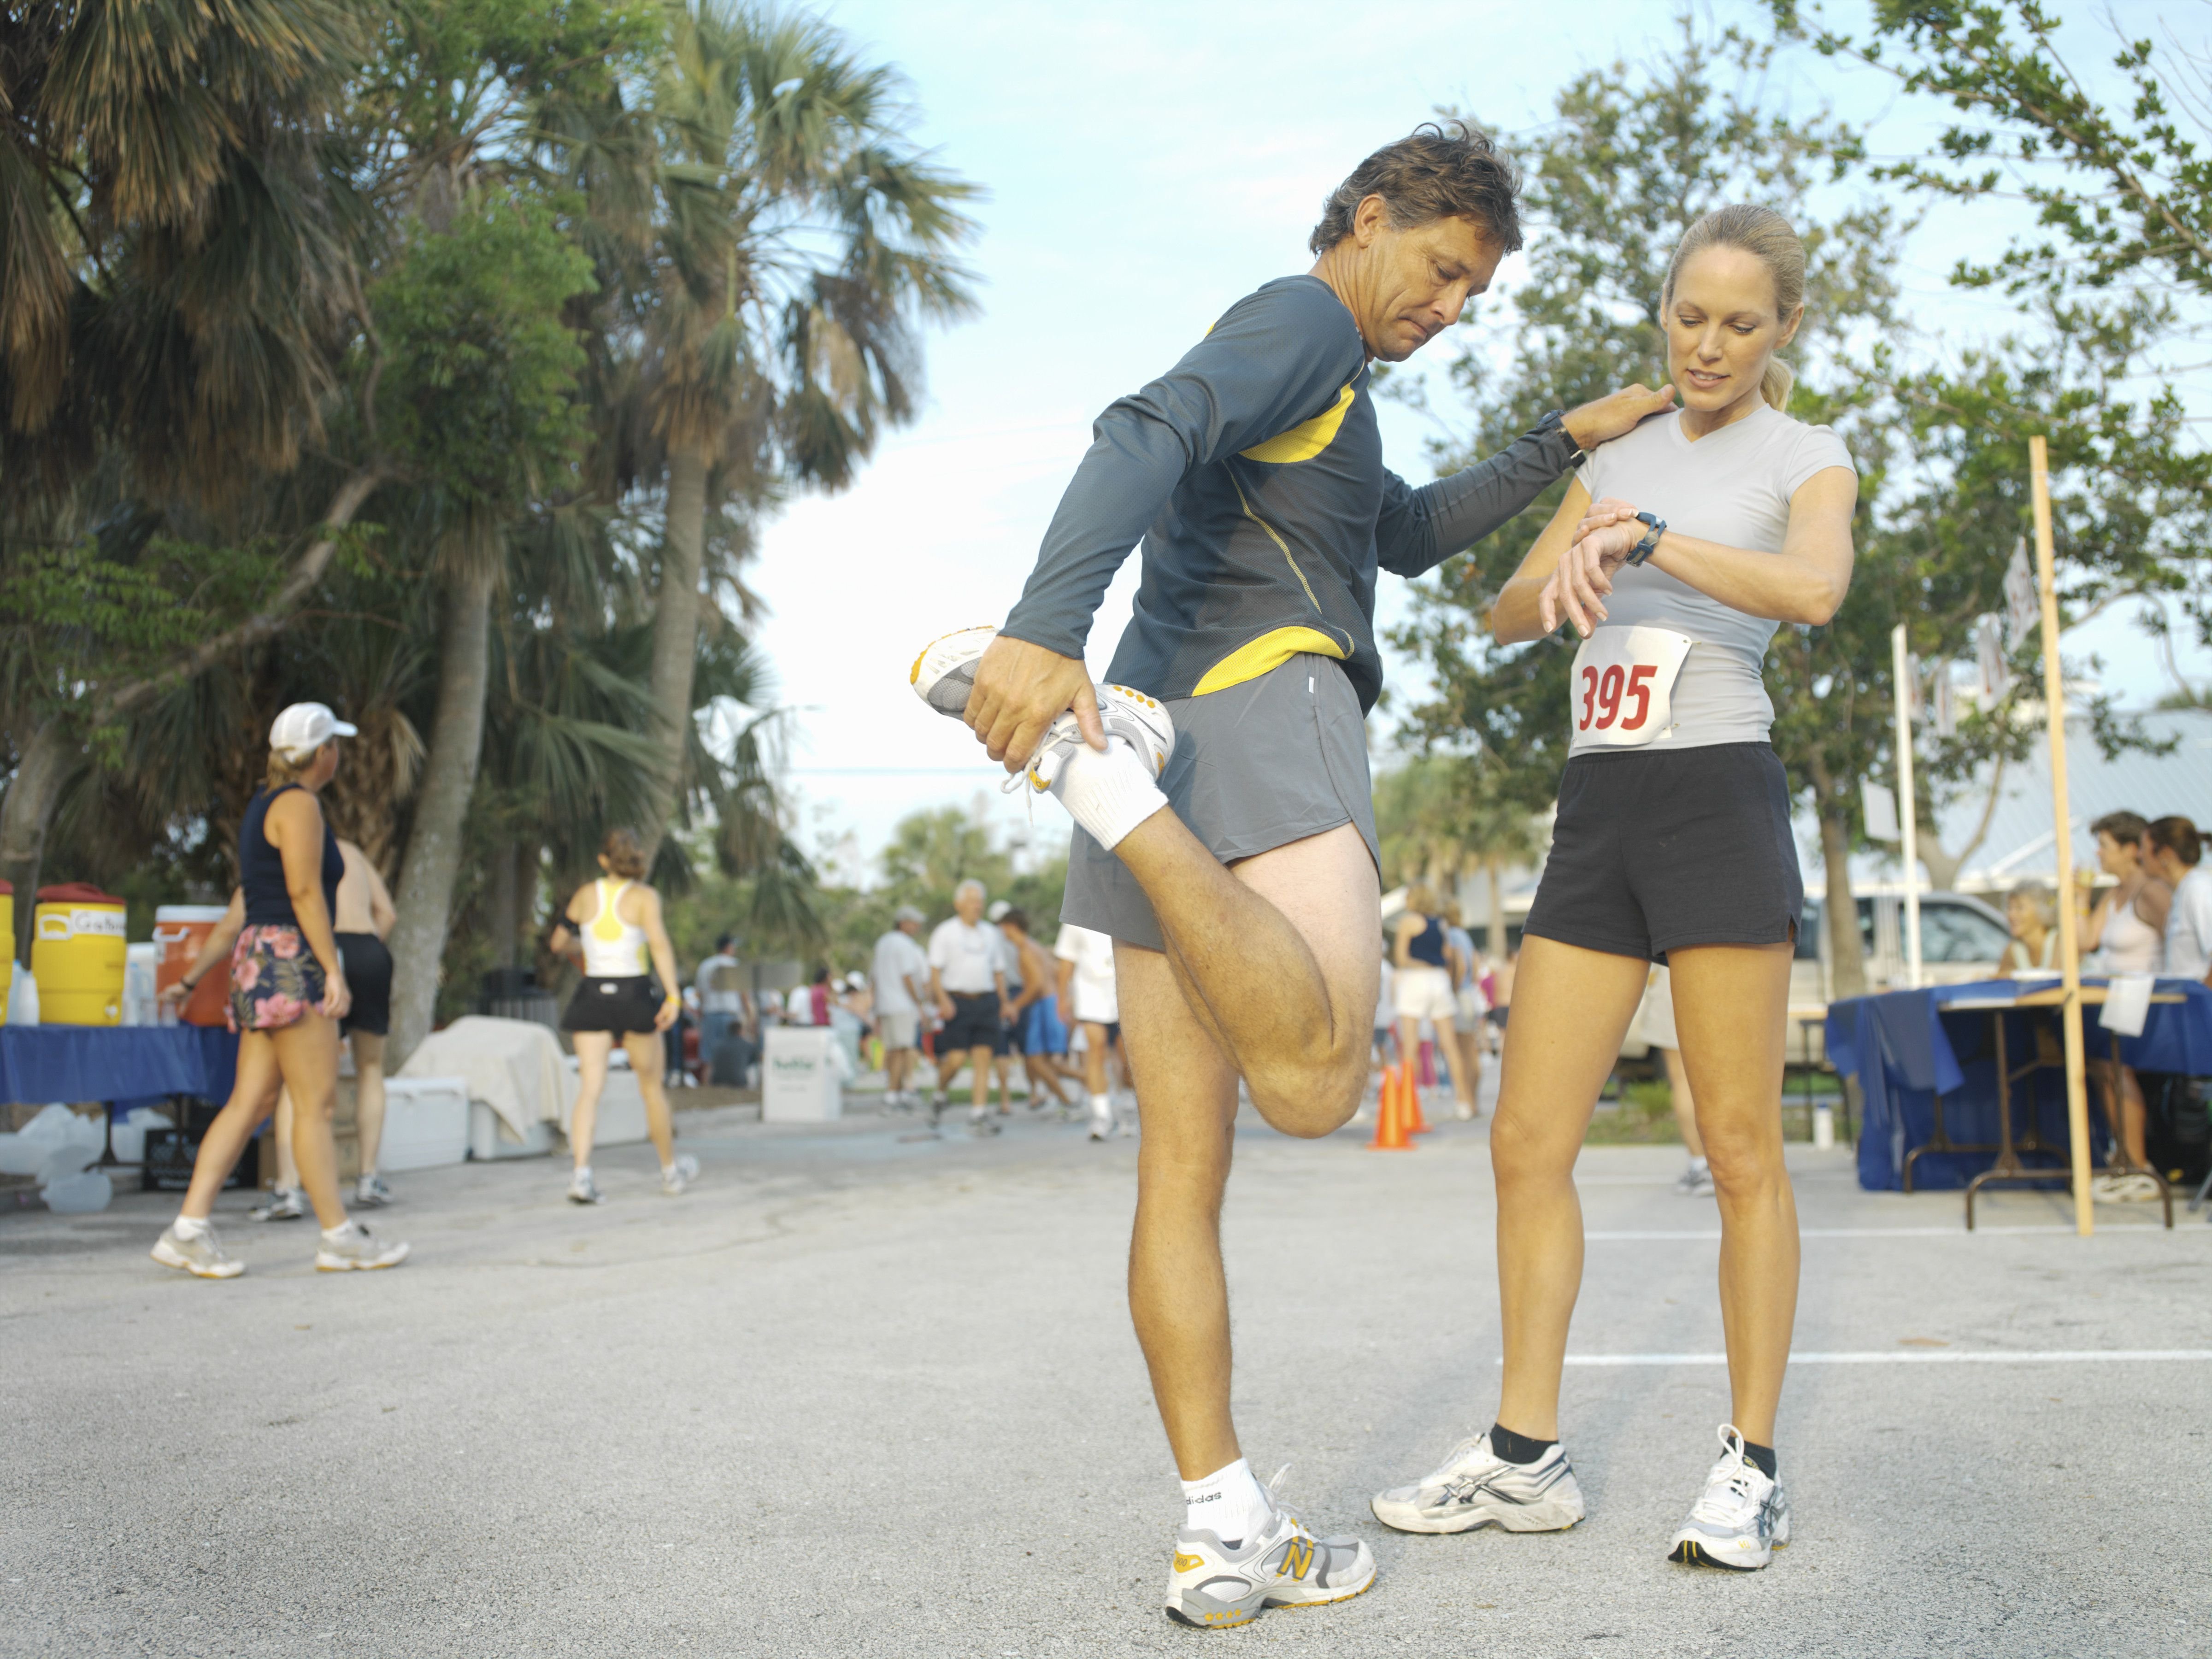 Runners stretching before race